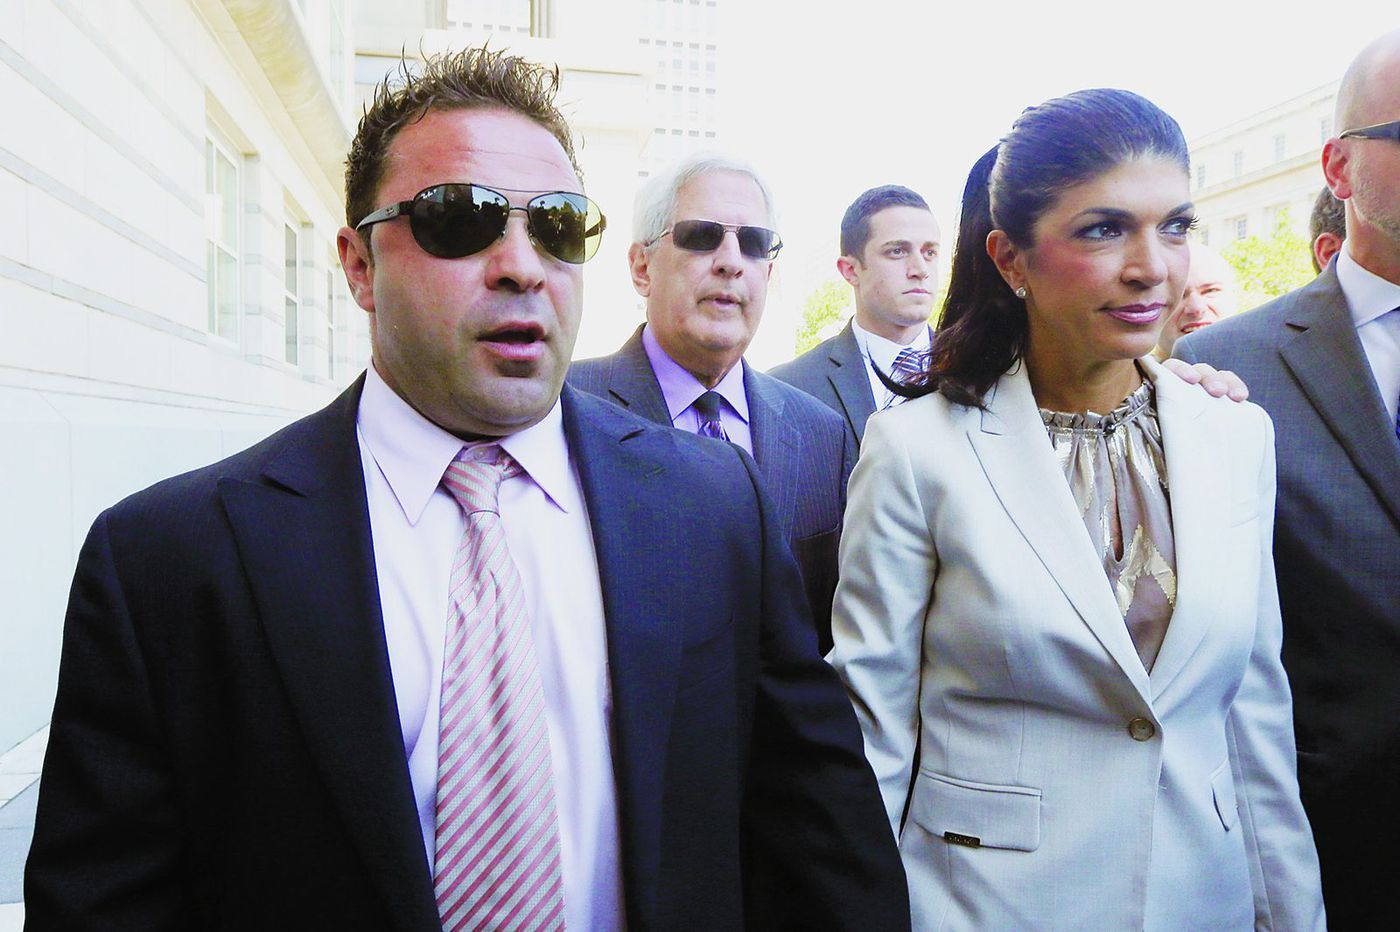 'Real Housewives of New Jersey' star Teresa Giudice's husband, Joe, to be deported to Italy